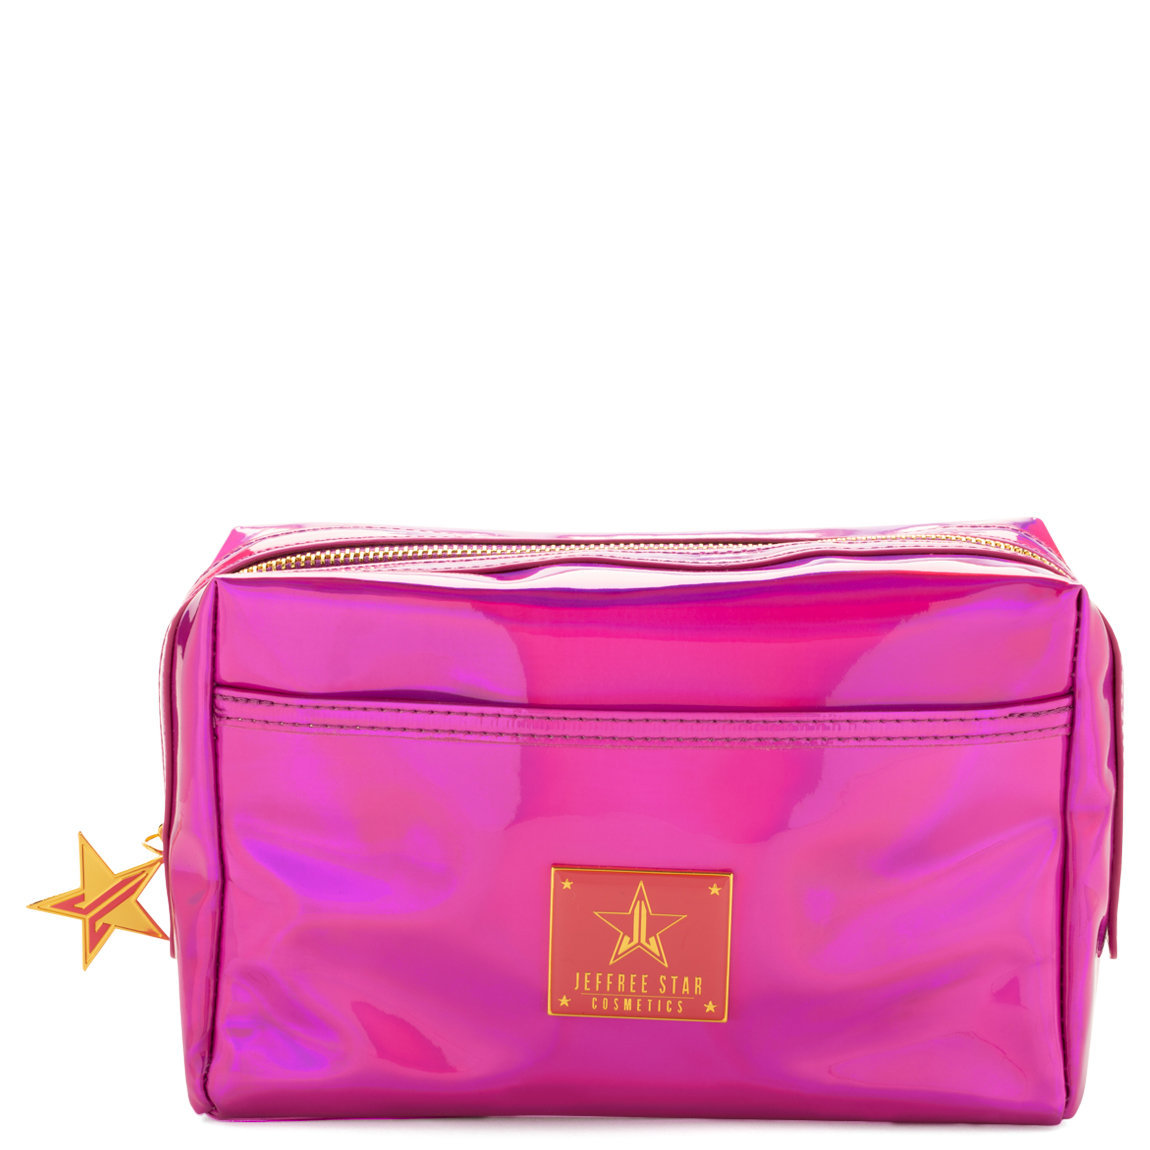 Jeffree Star Cosmetics Makeup Bag Holographic Purple product swatch.